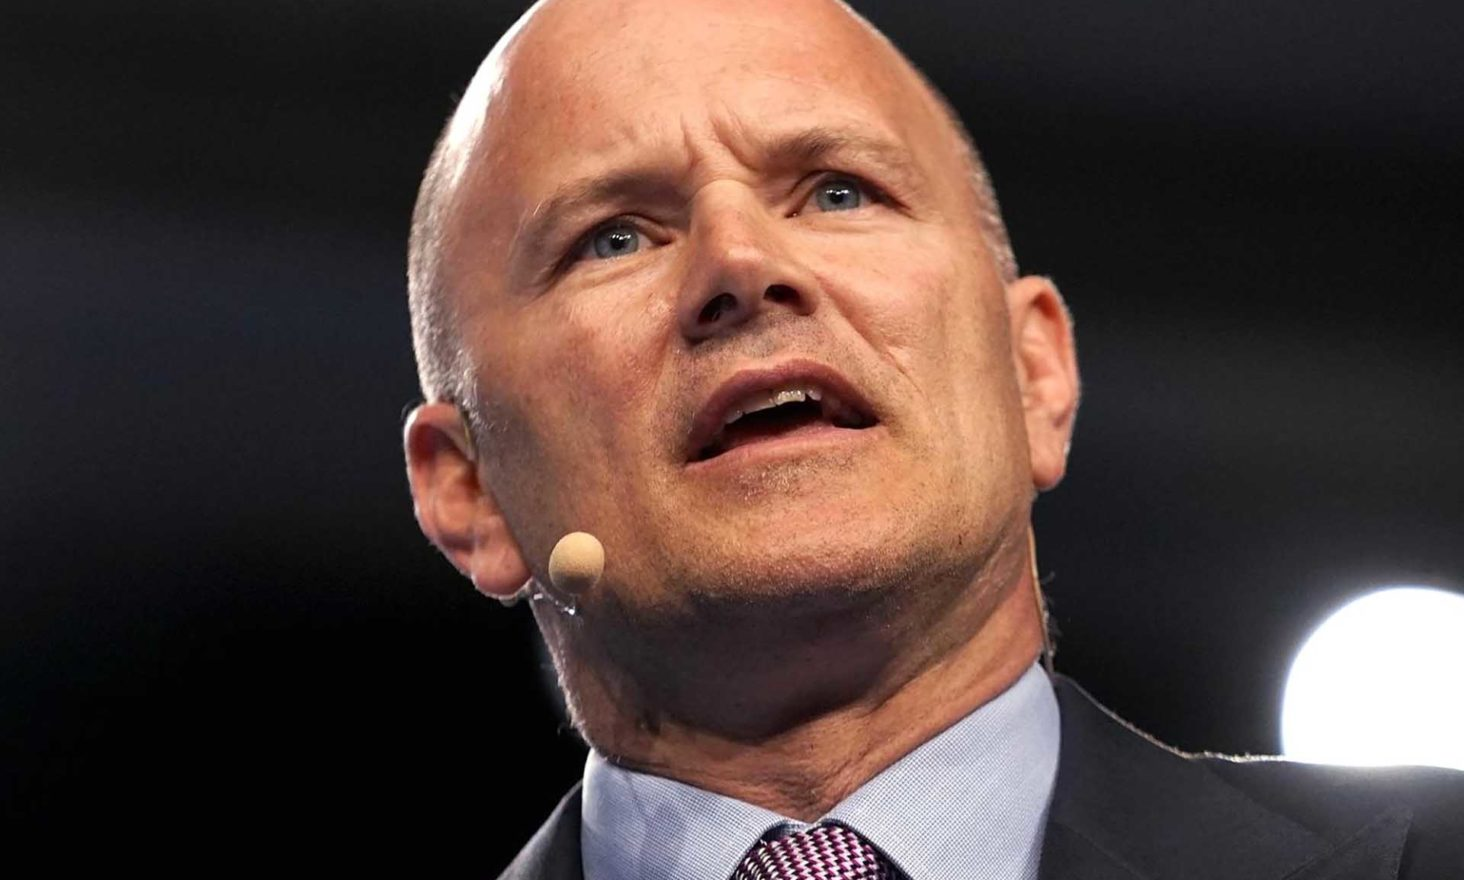 Novogratz Sets Next Target Price for Bitcoin at $40,000